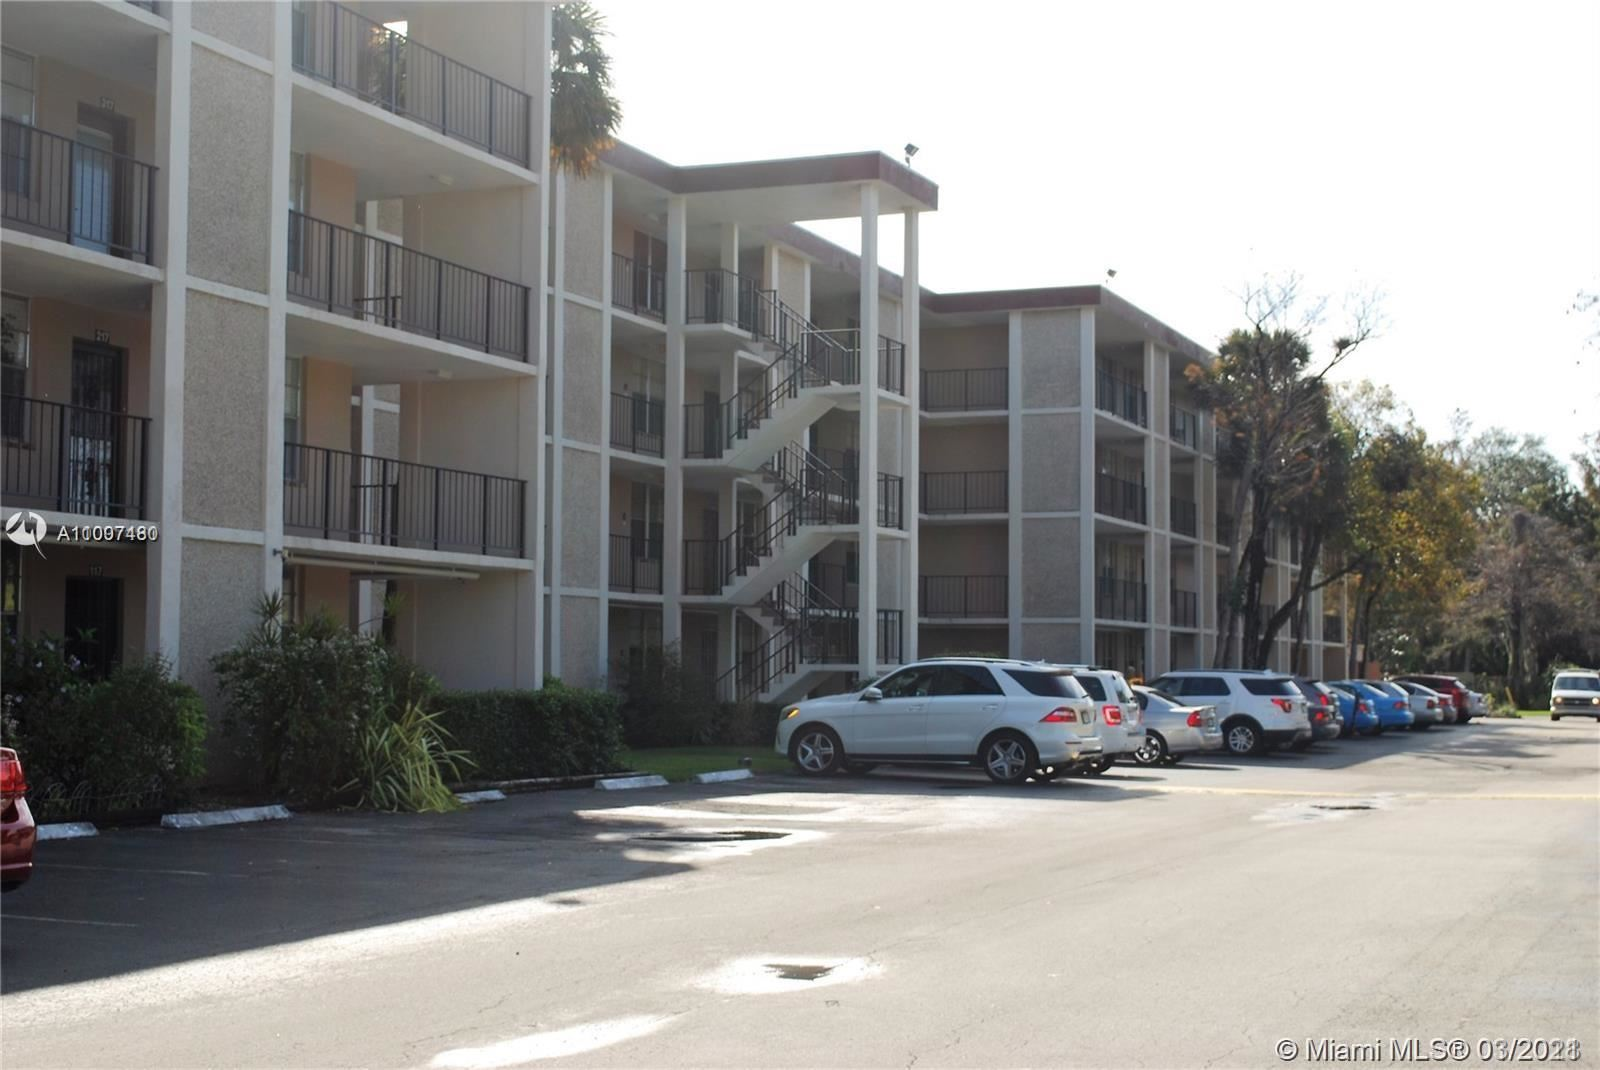 2650 NW 49th Ave #417, Lauderdale Lakes, FL 33313 - #: A11007480